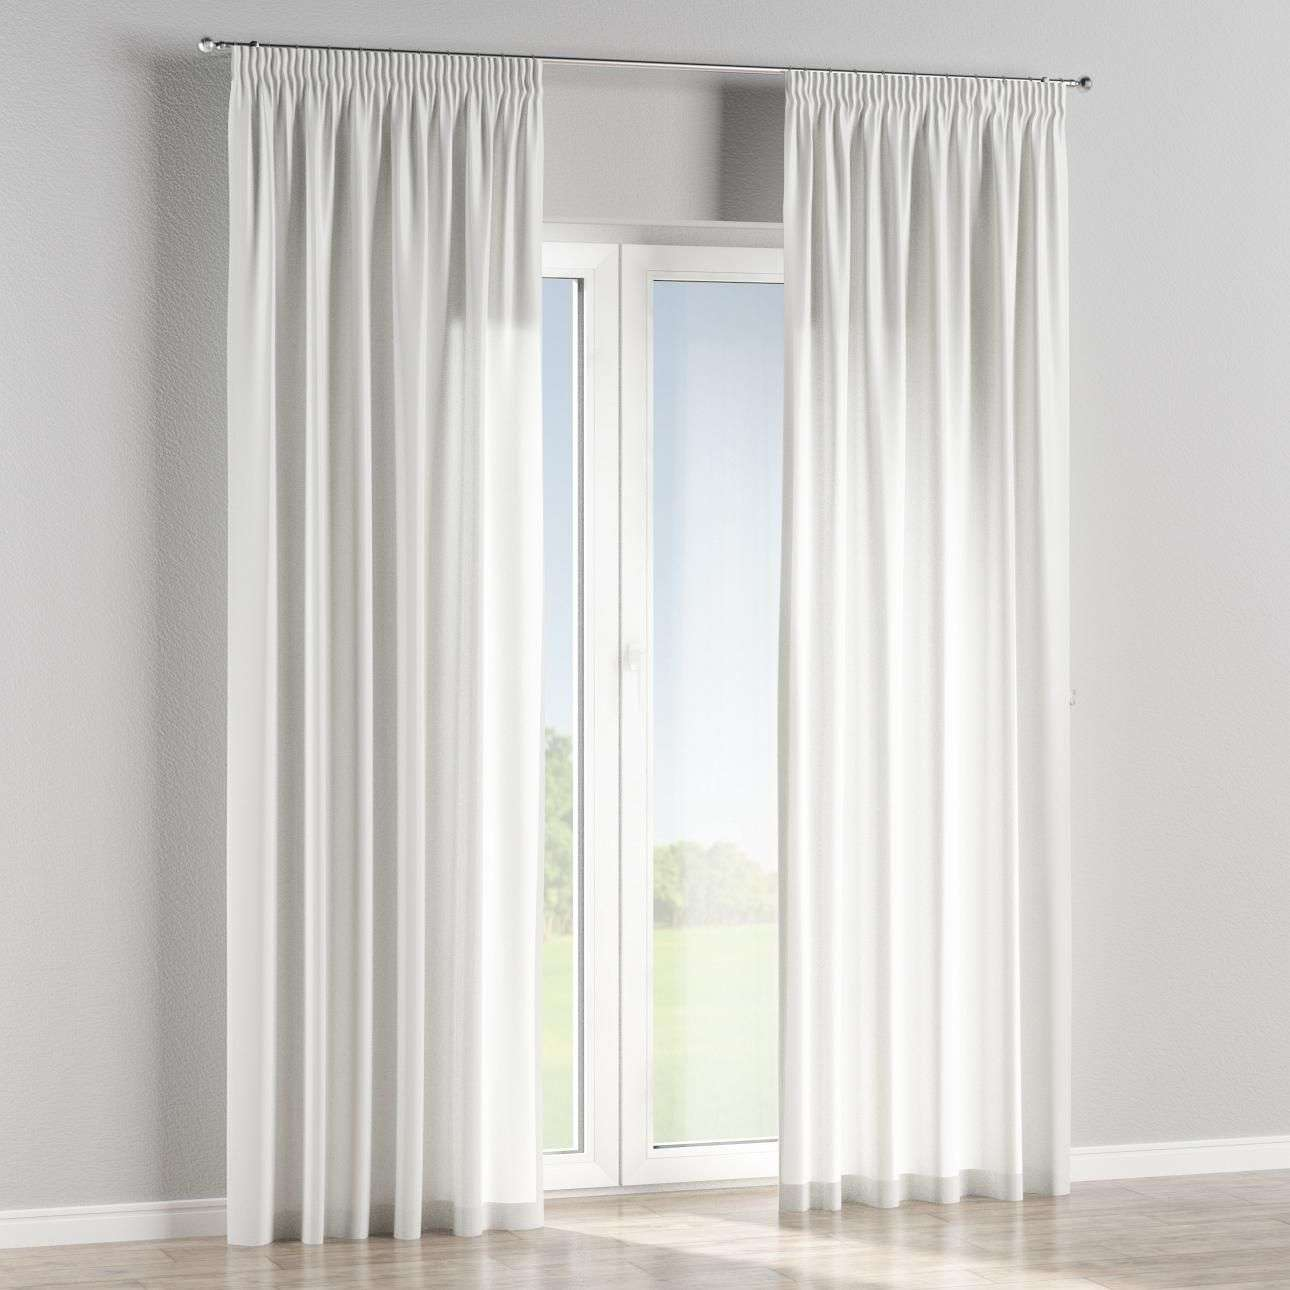 Pencil pleat curtains in collection SALE, fabric: 135-60